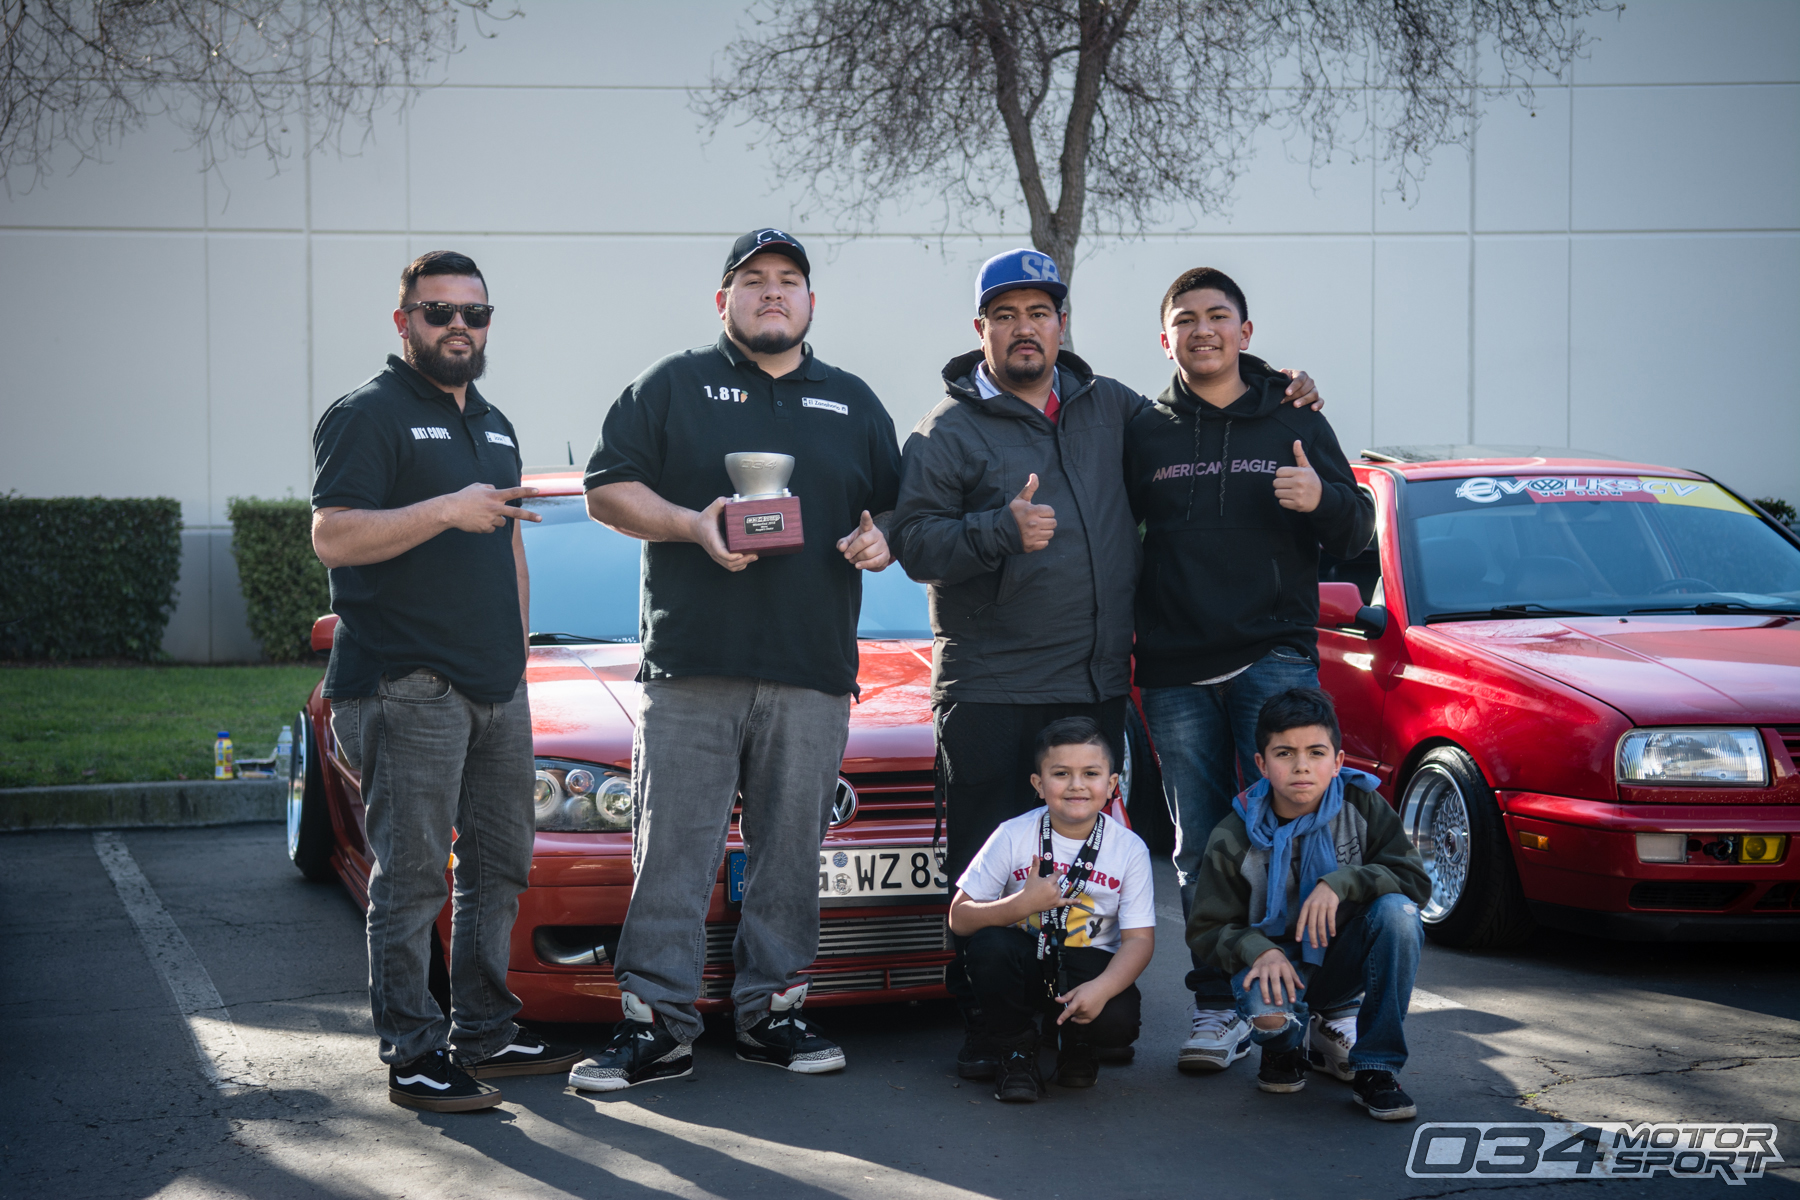 Raul Serrato and his MkIV Volkswagen Golf 1.8T won People's Choice at WinterFest 2018.